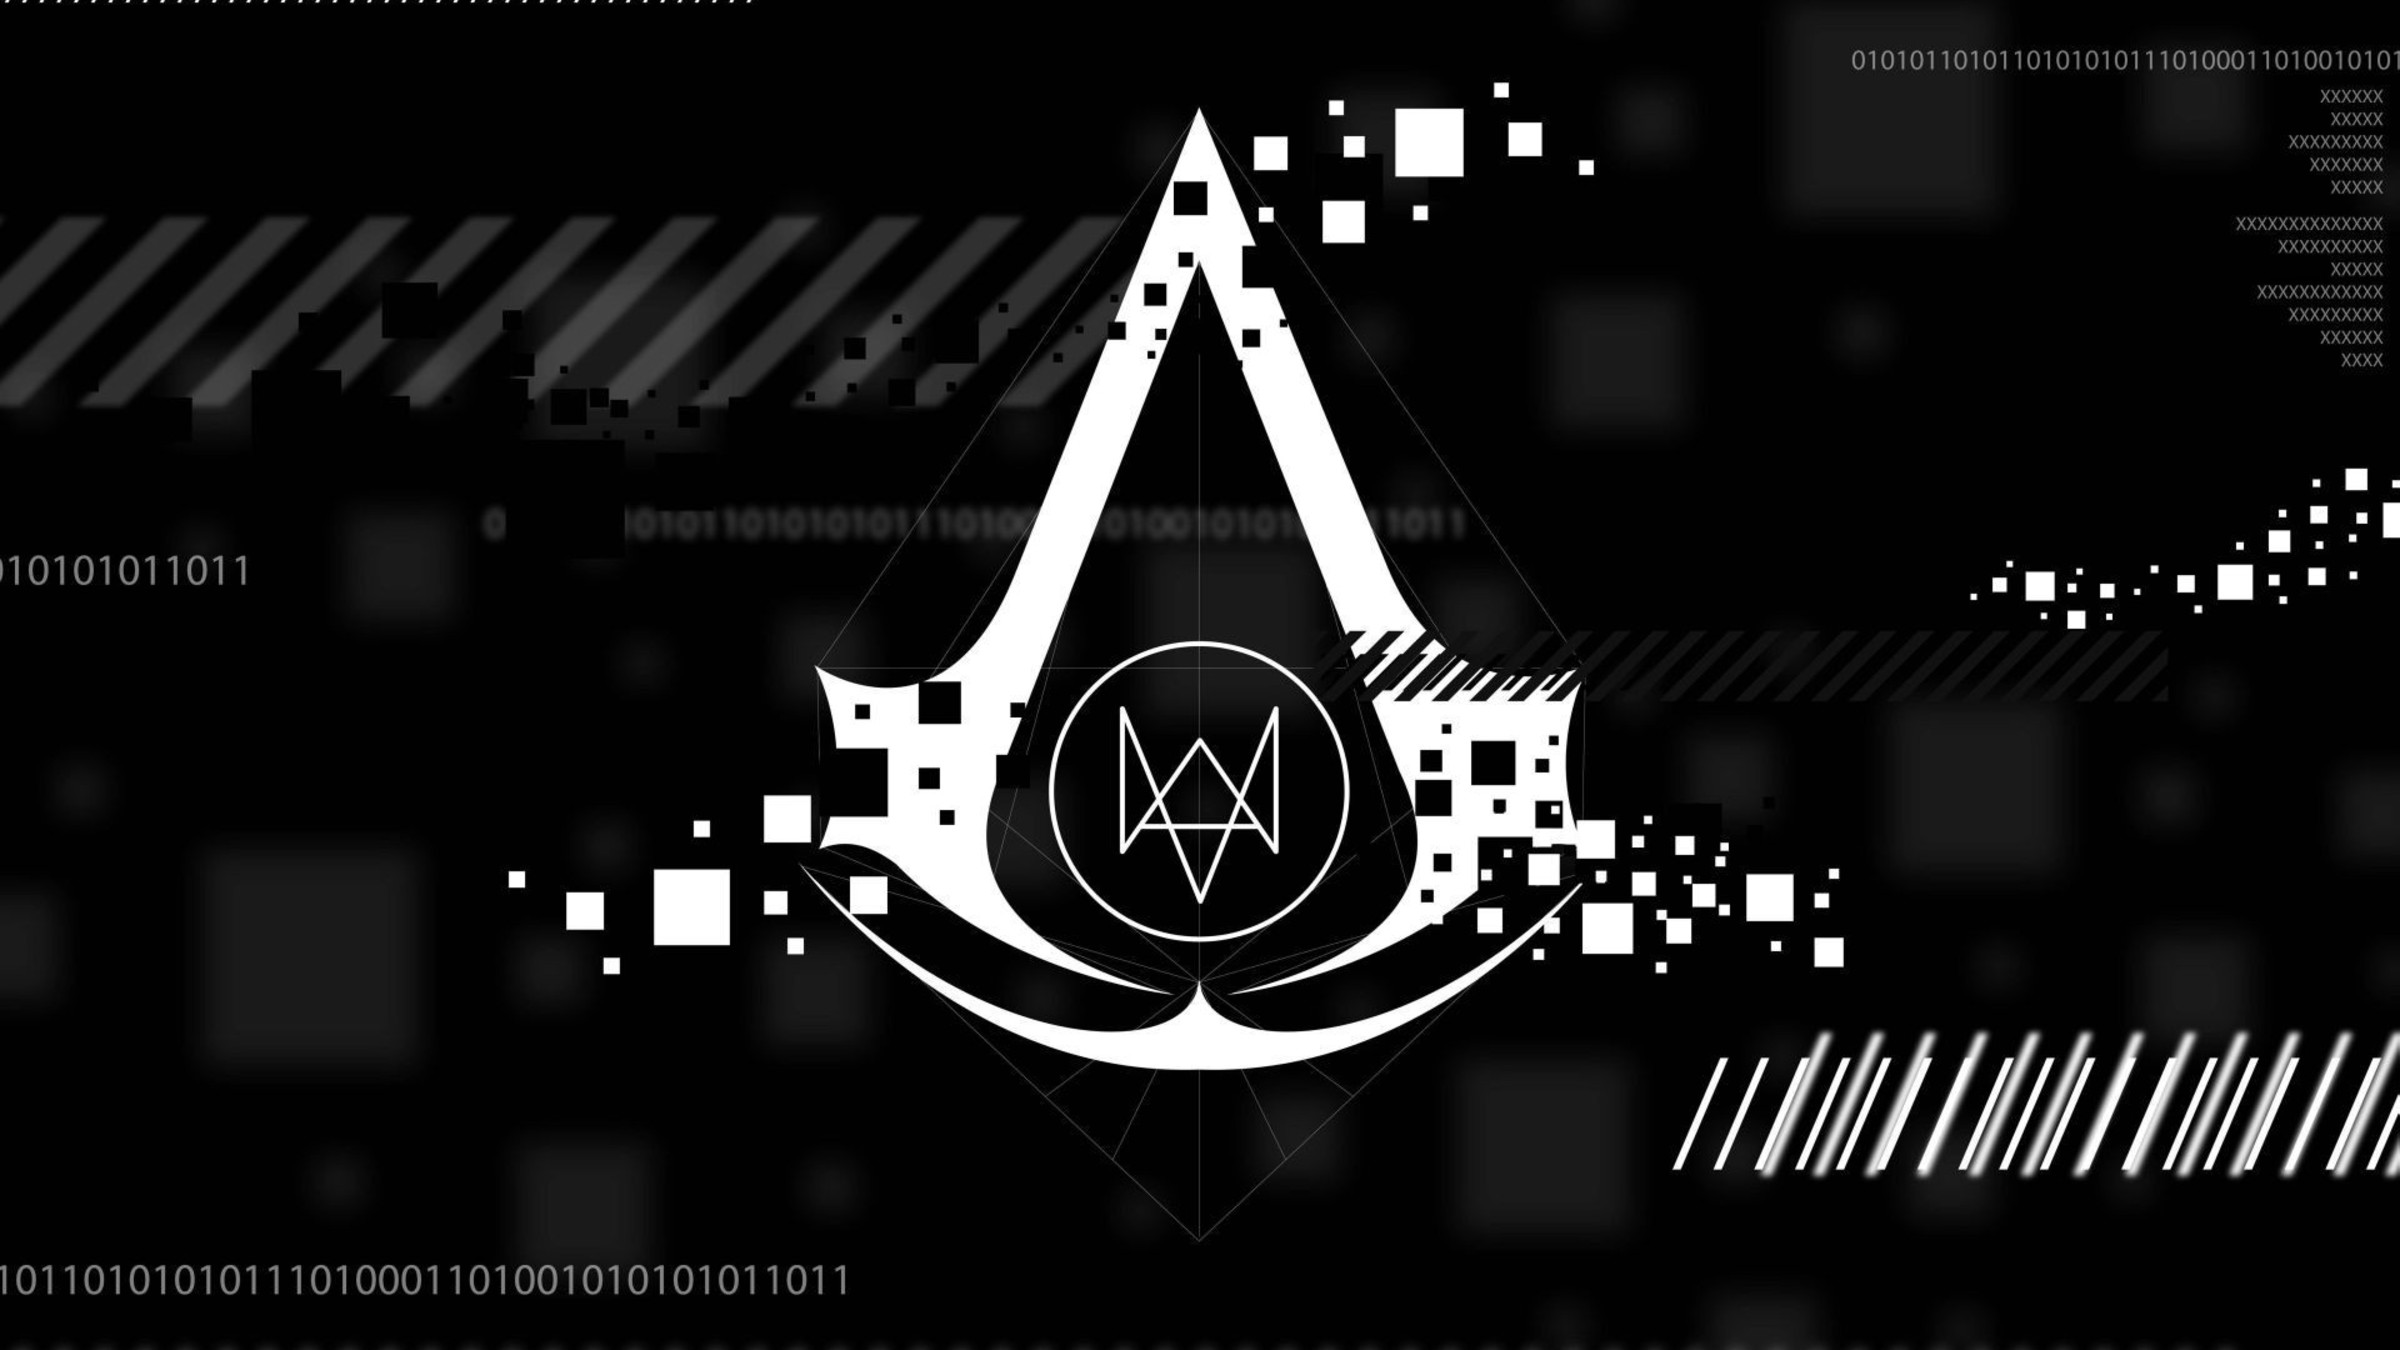 assassins creed watch dogs logos video games wallpaper